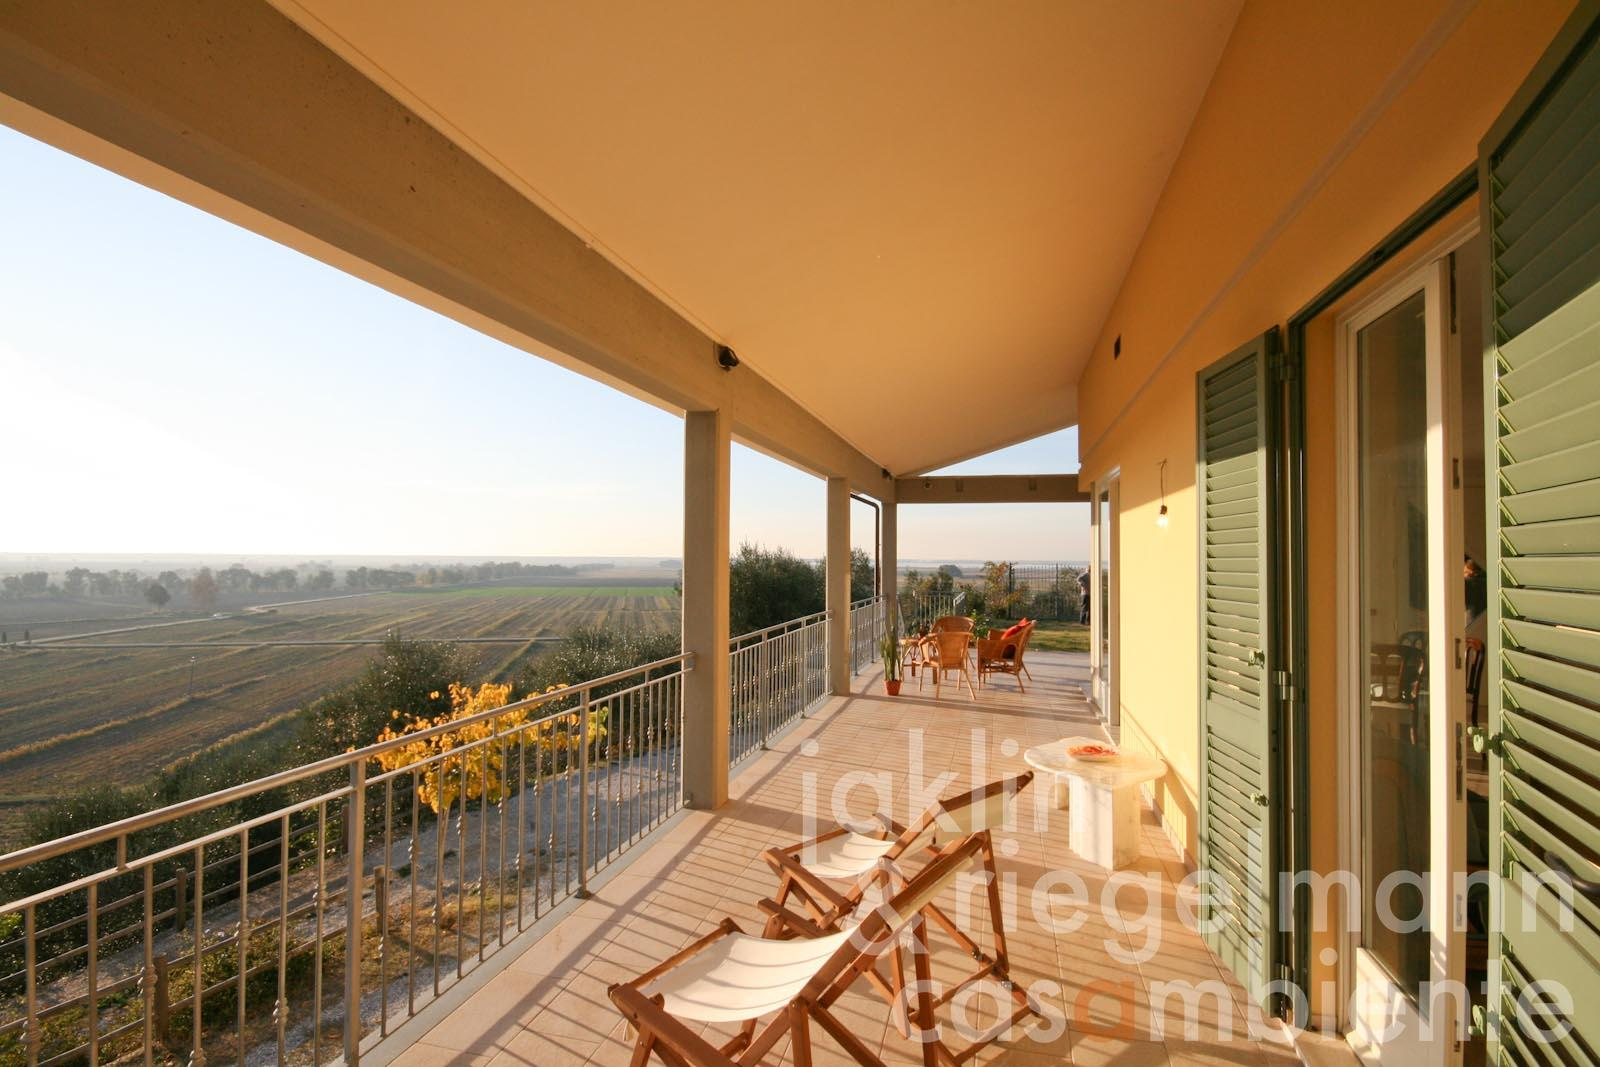 The modern villa for sale with panoramic views across Lago di Massaciuccoli in Tuscany